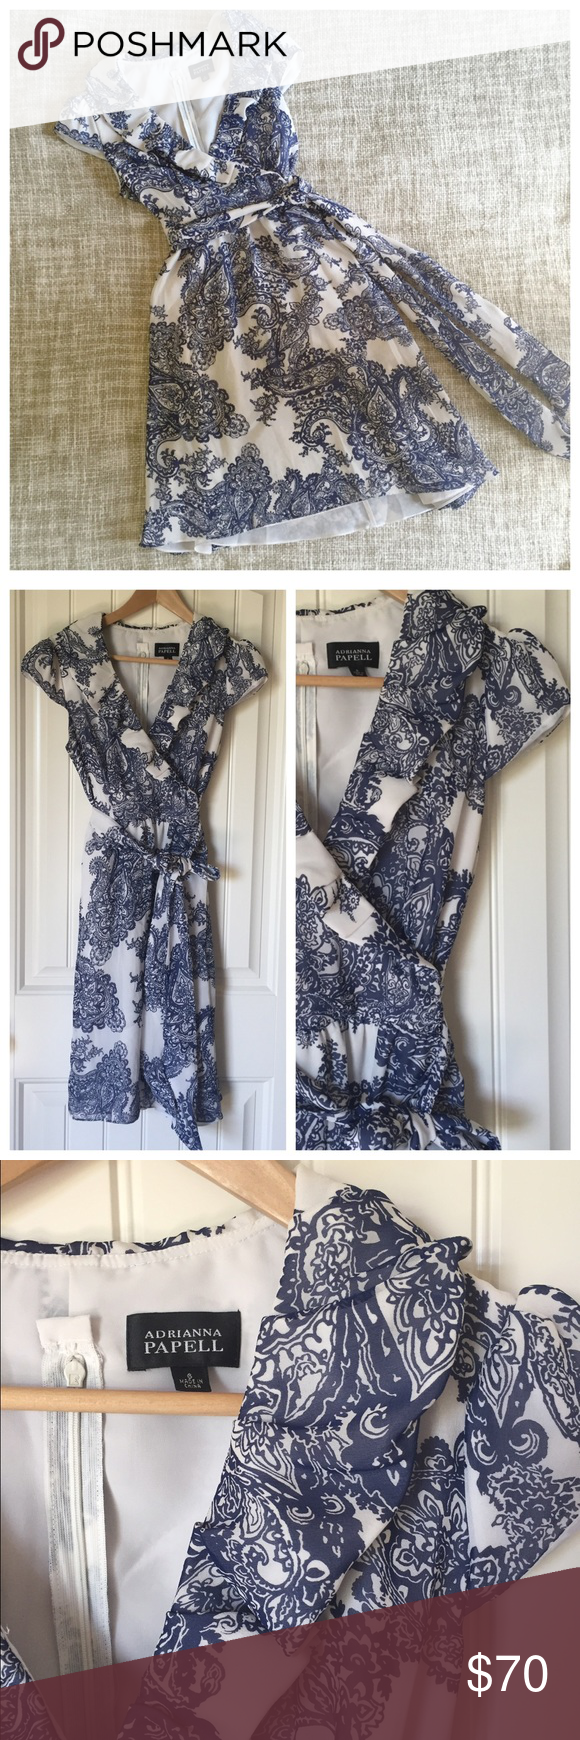 Adrianna Papell Paisley Ruffled Faux Wrap Dress   Faux ...